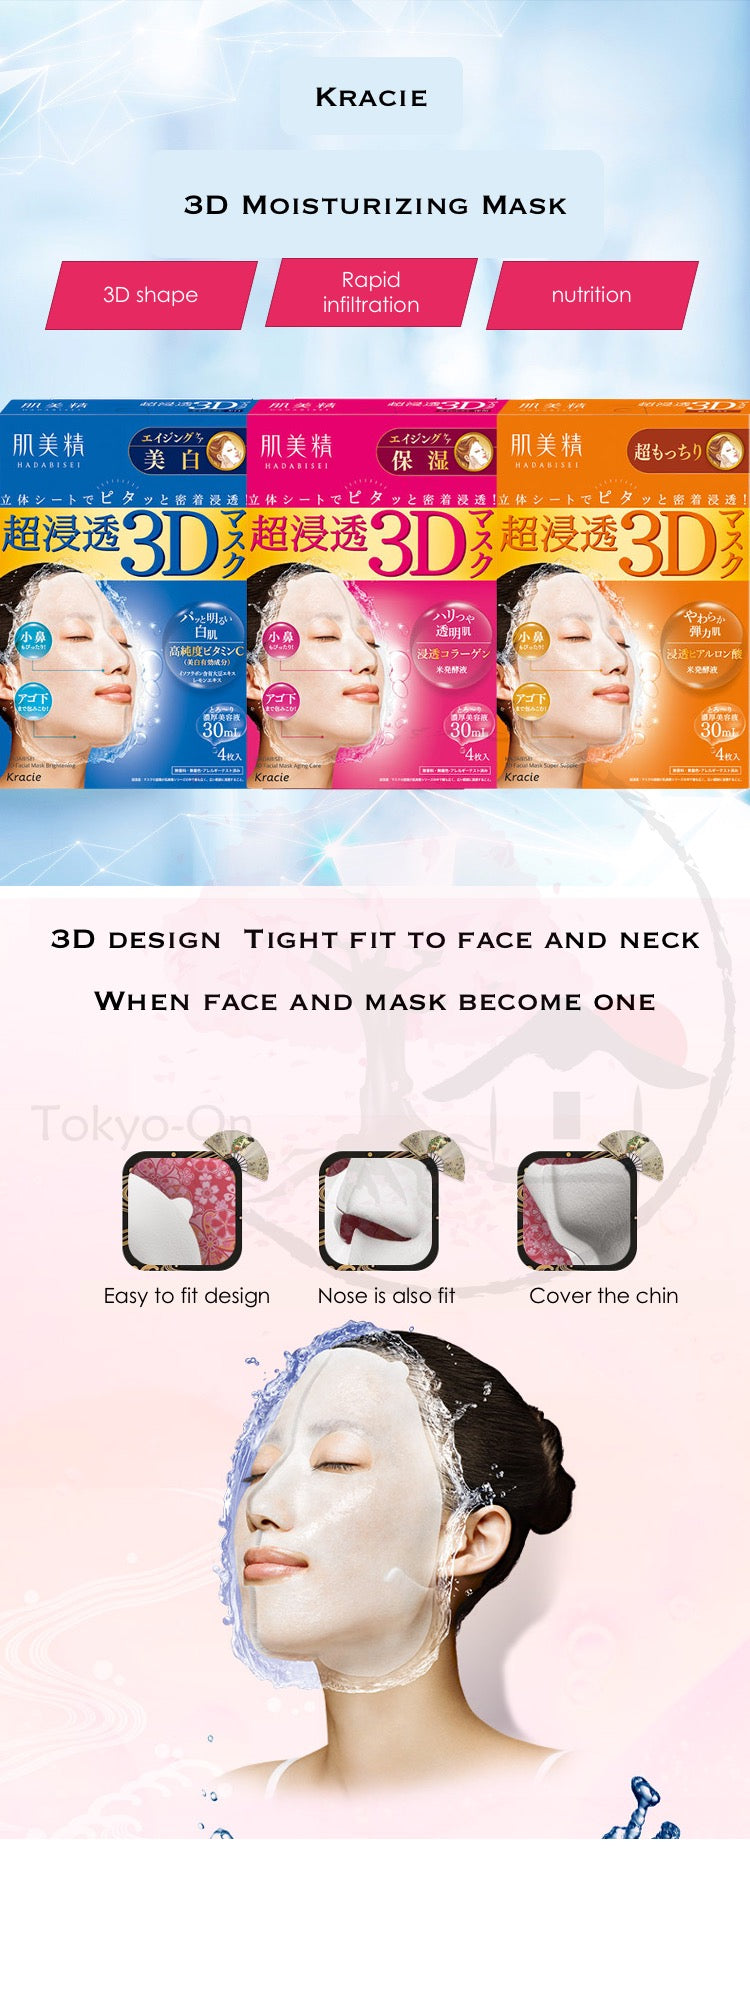 Tokyo-On Kracie Hadabisei Aging 3D Whitening Mask, 4 Sheets